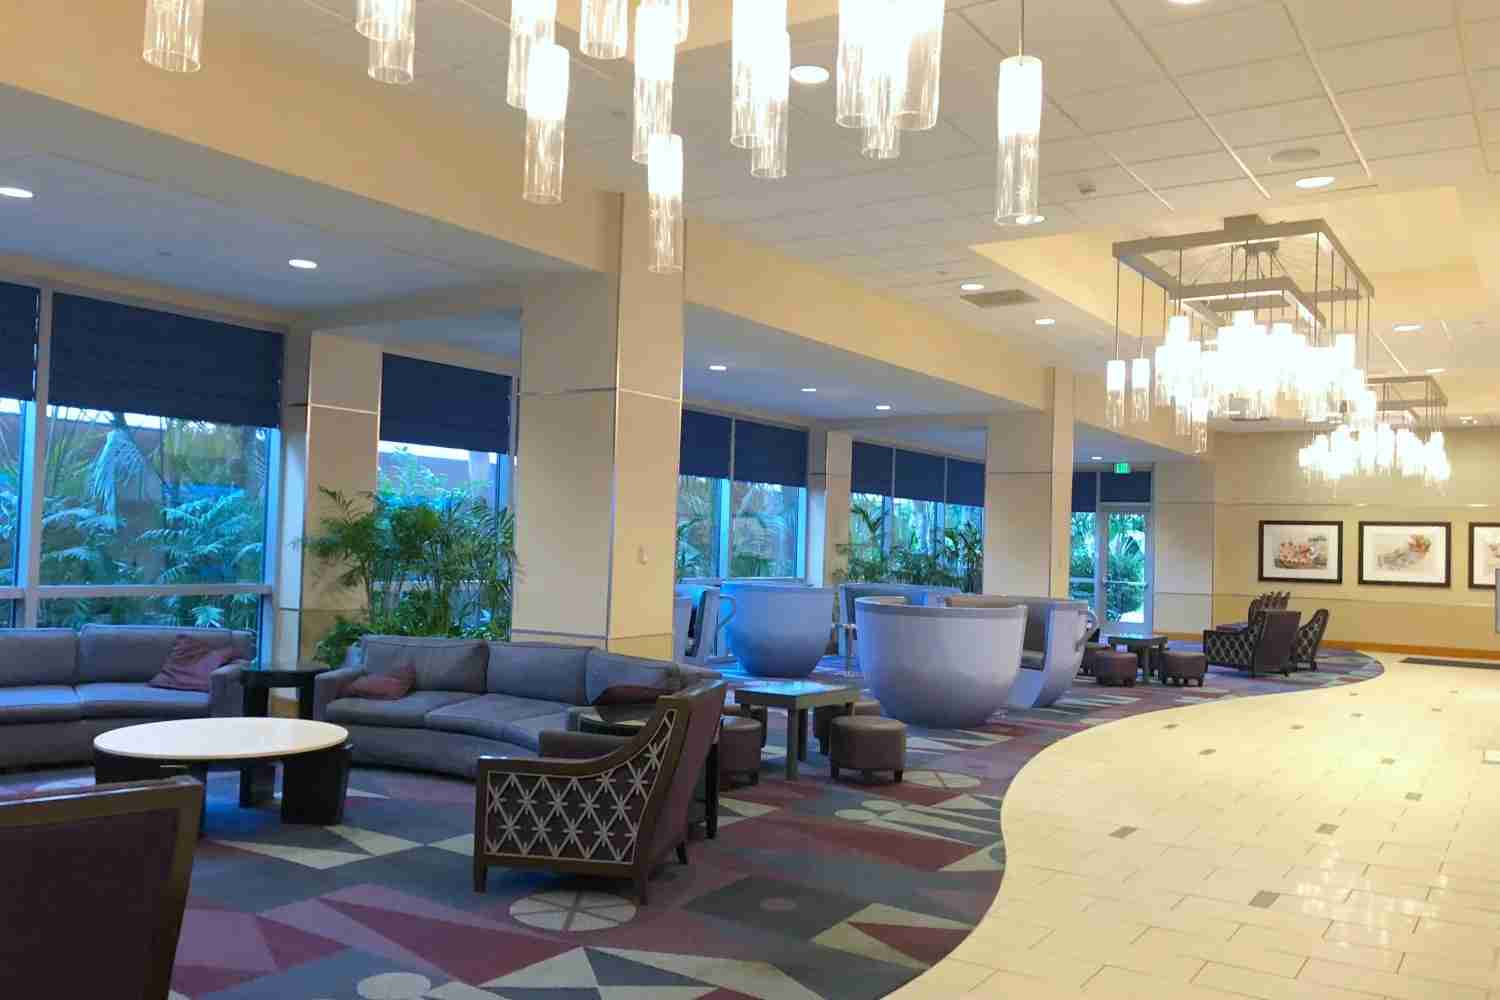 Disneyland Hotel Review - Hotel Lobby